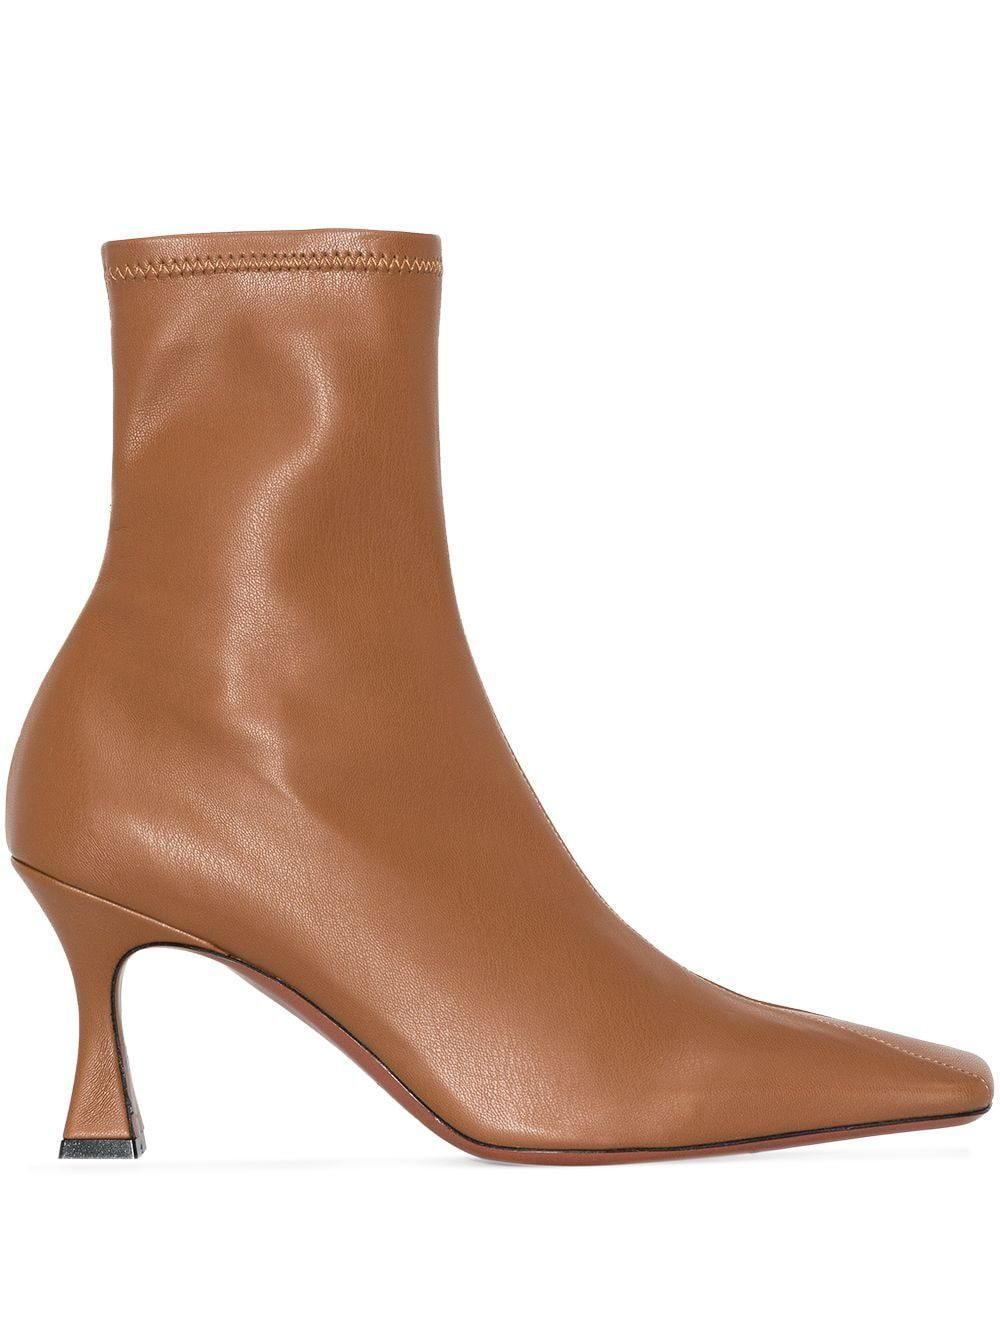 manu atelier duck 80mm ankle boots